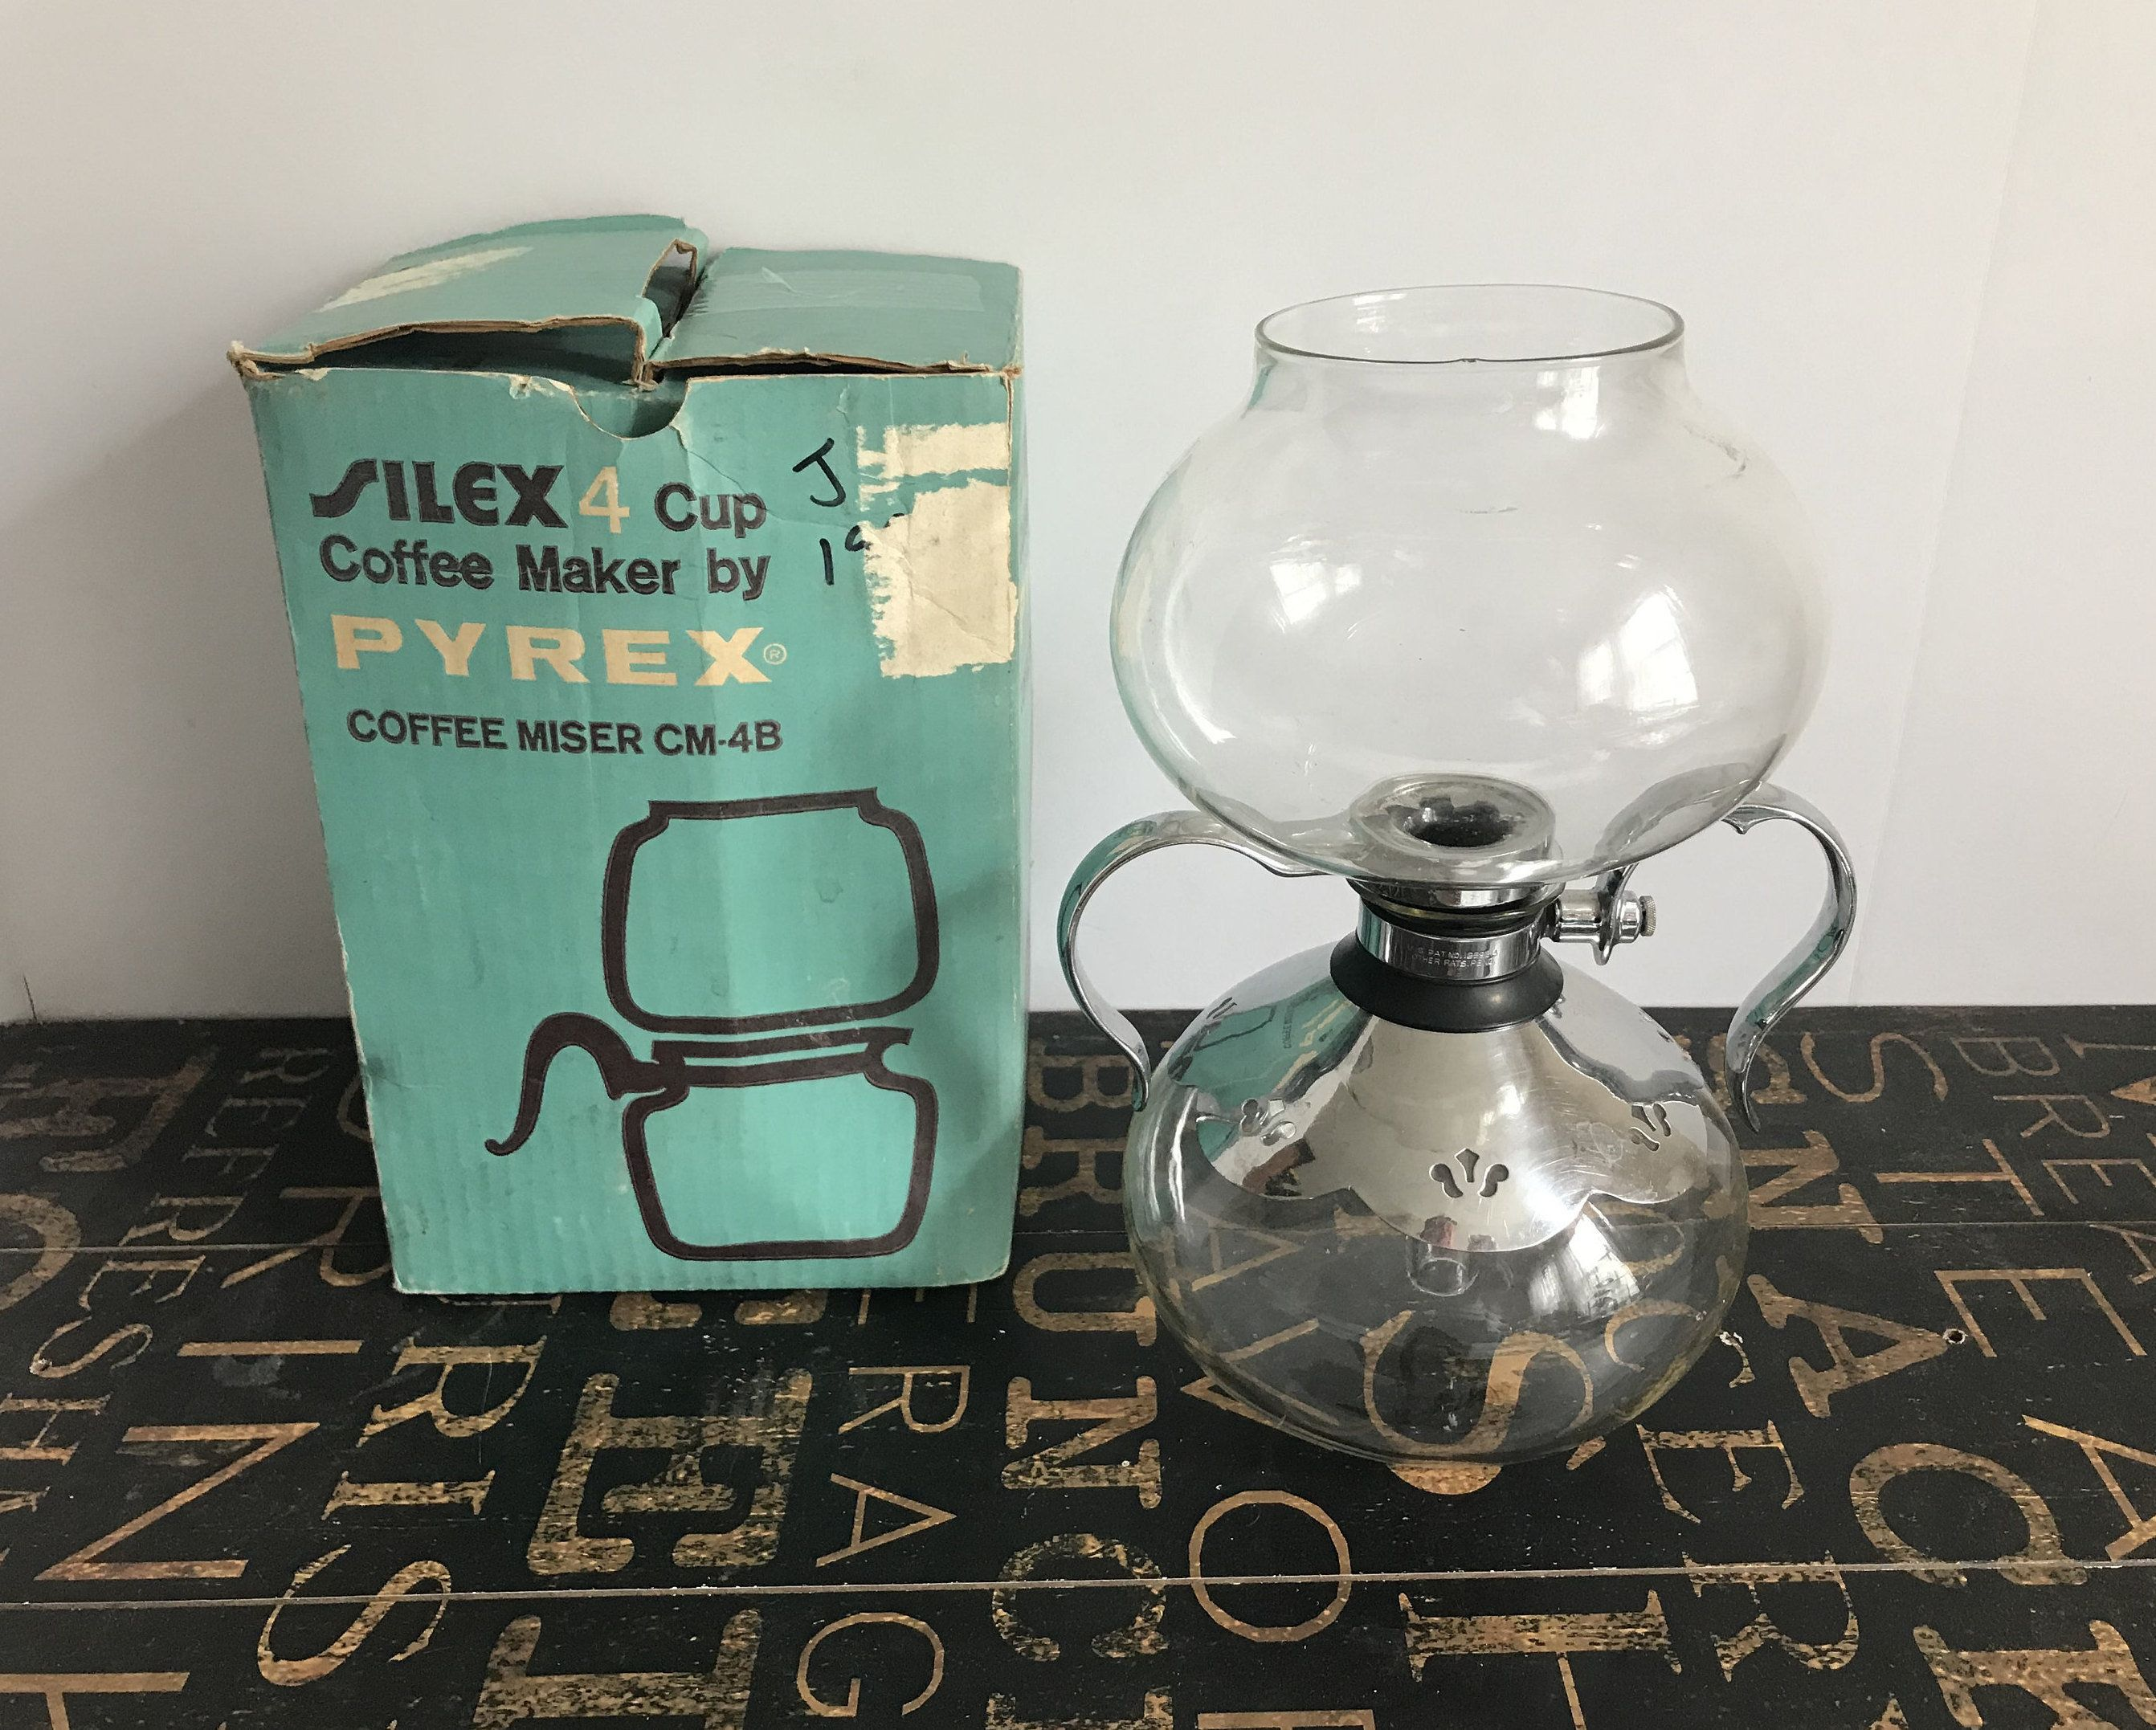 Silex Four 4 Cup Coffee Maker By Pyrex Coffee Miser Glass Vacuum Coffee Maker Has Instructions And Acce Vacuum Coffee Maker 4 Cup Coffee Maker Coffee Maker